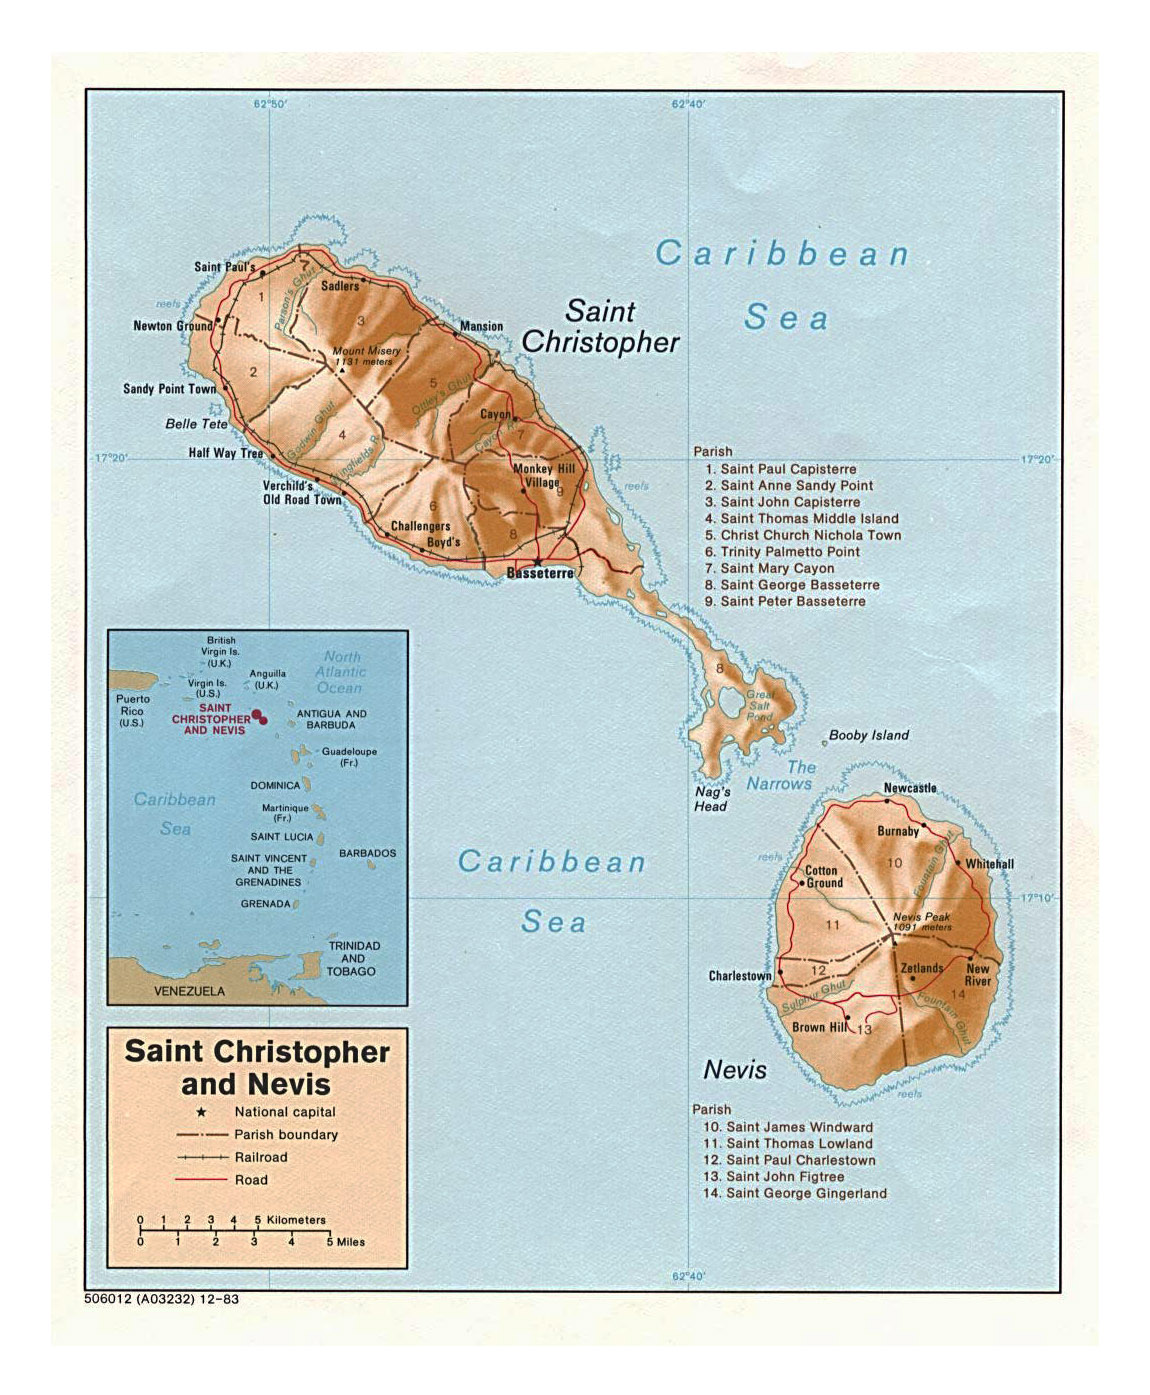 Large political and administrative map of Saint Kitts and Nevis with